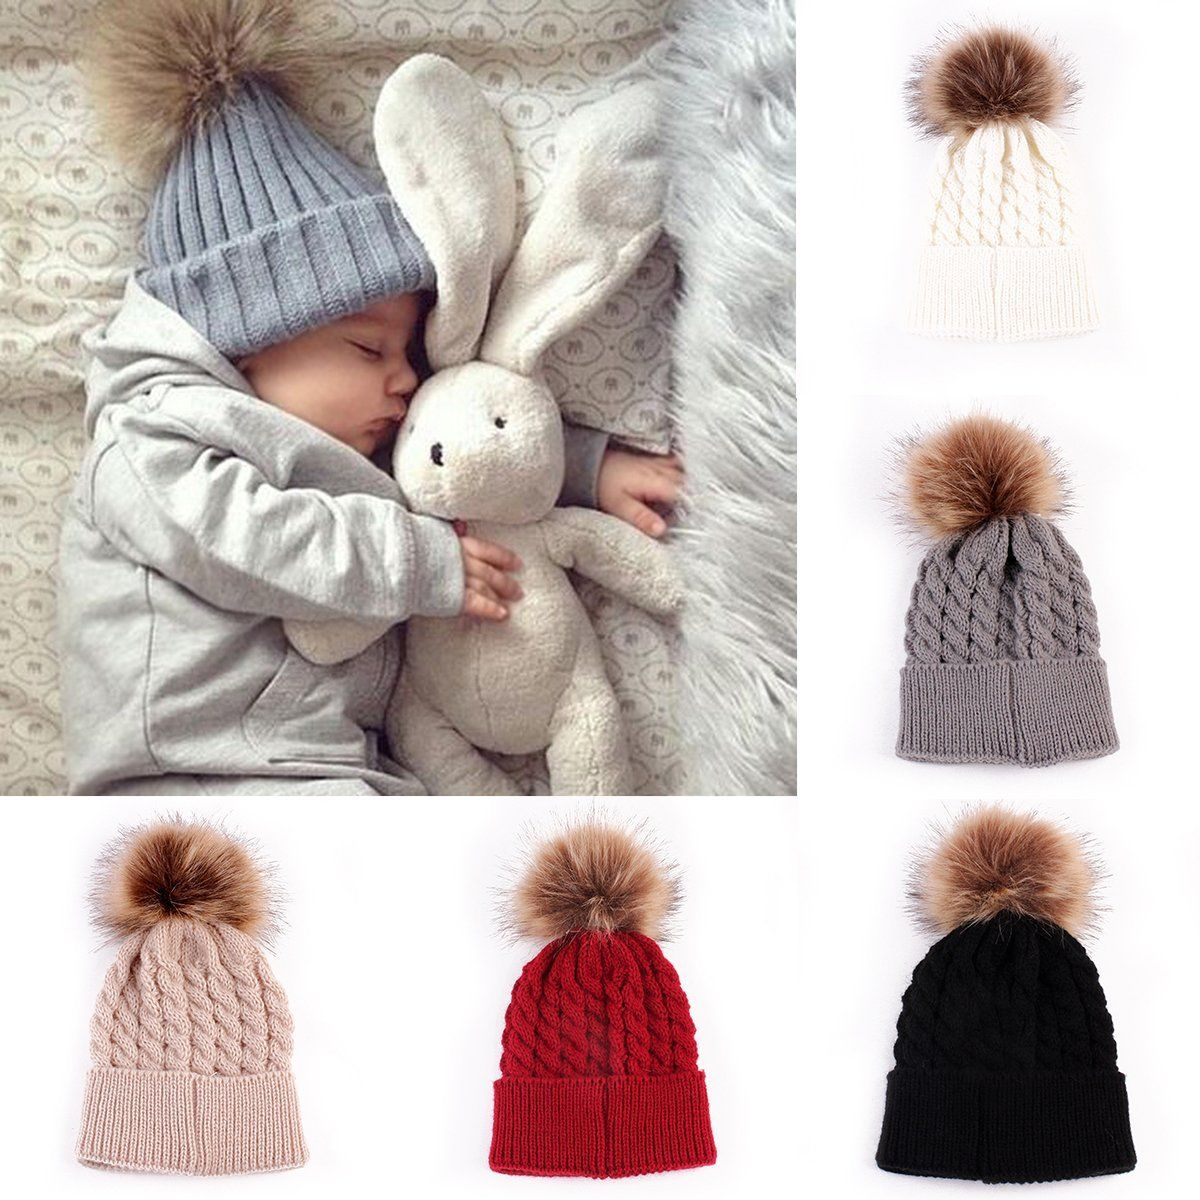 Infant Winter Warm Knit Crochet Caps Baby Beanie Hat Toddler Kid Faux Fur pom pom Knit skullies ski Cap 0-3 years dhl ems ham4 zem2 9930 7000 0310 for dmc cs b803 st electronics